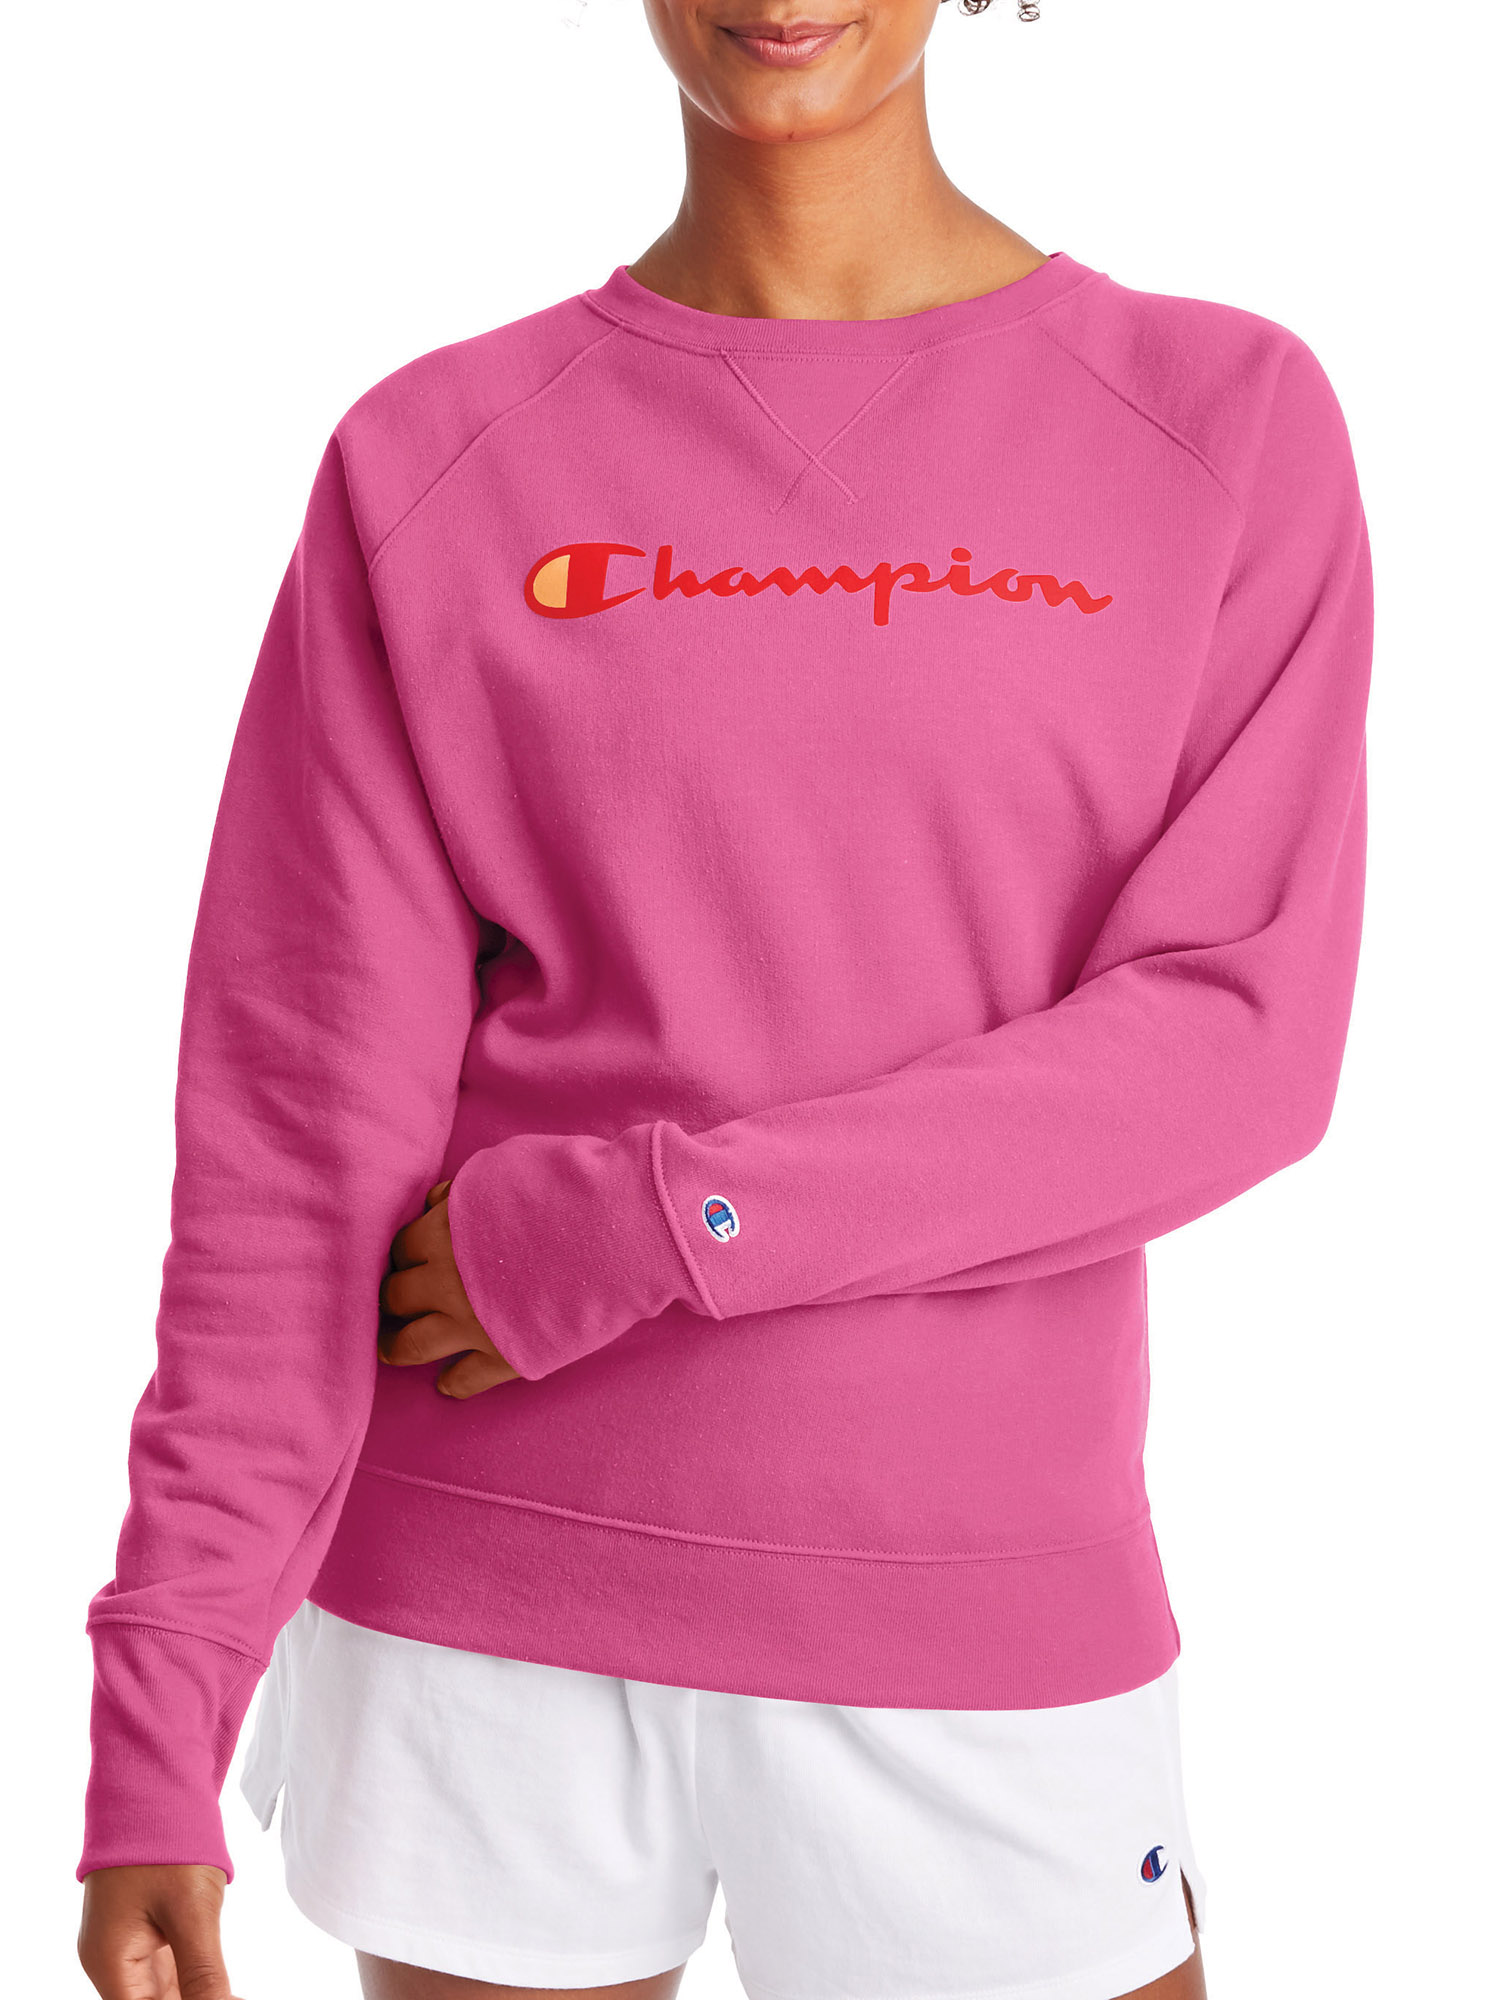 Hoodies Sweatshirt/ Autumn Winter Sports,Soccer Ball Fire and Water,Sweatshirts for Women Hanes